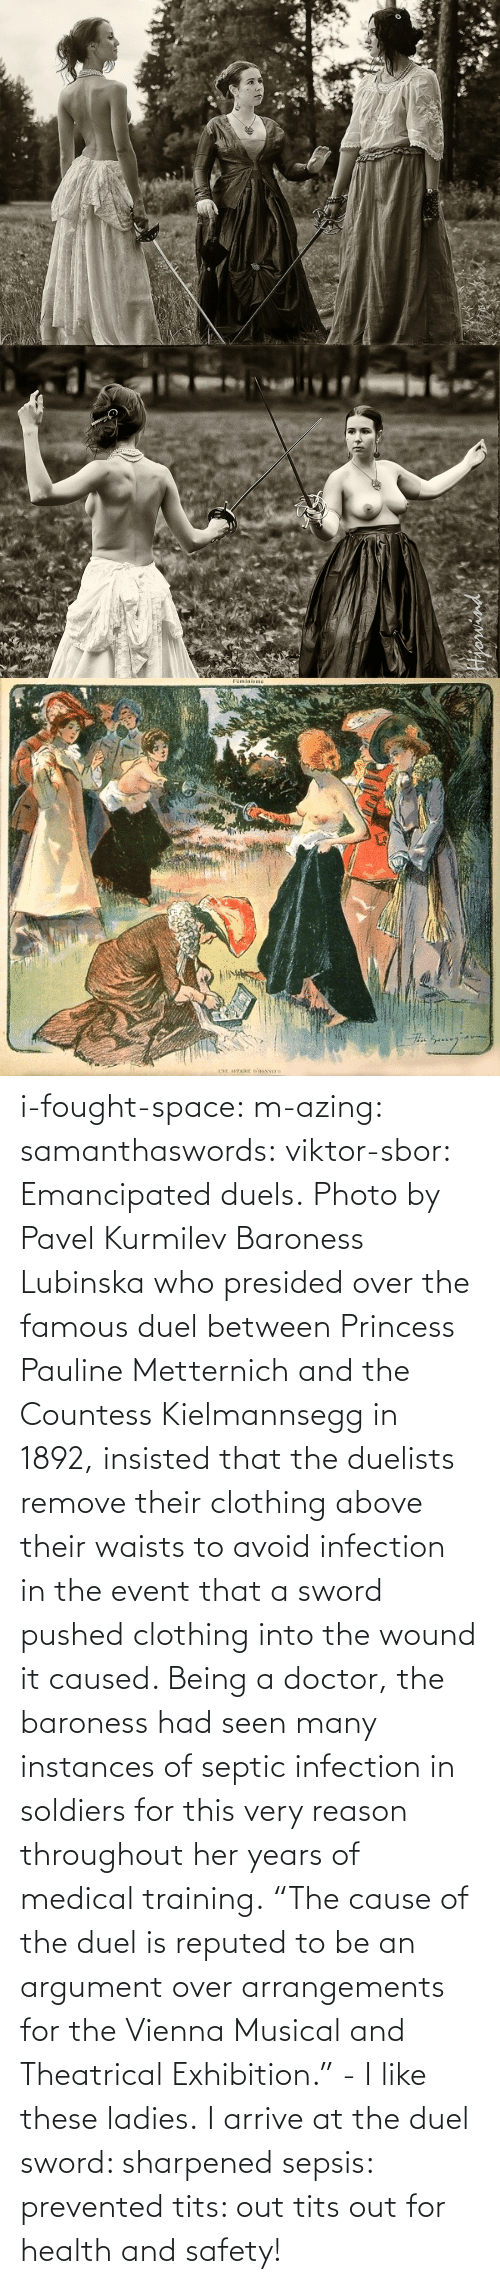 """Doctor, Soldiers, and Tumblr: i-fought-space:  m-azing: samanthaswords:  viktor-sbor:  Emancipated duels.Photo by Pavel Kurmilev Baroness Lubinska who presided over the famous duel between Princess Pauline Metternich and the Countess Kielmannsegg in 1892, insisted that the duelists remove their clothing above their waists to avoid infection in the event that a sword pushed clothing into the wound it caused. Being a doctor, the baroness had seen many instances of septic infection in soldiers for this very reason throughout her years of medical training.  """"The cause of the duel is reputed to be an argument over arrangements for the Vienna Musical and Theatrical Exhibition."""" - I like these ladies.  I arrive at the duel sword: sharpened sepsis: prevented tits: out  tits out for health and safety!"""